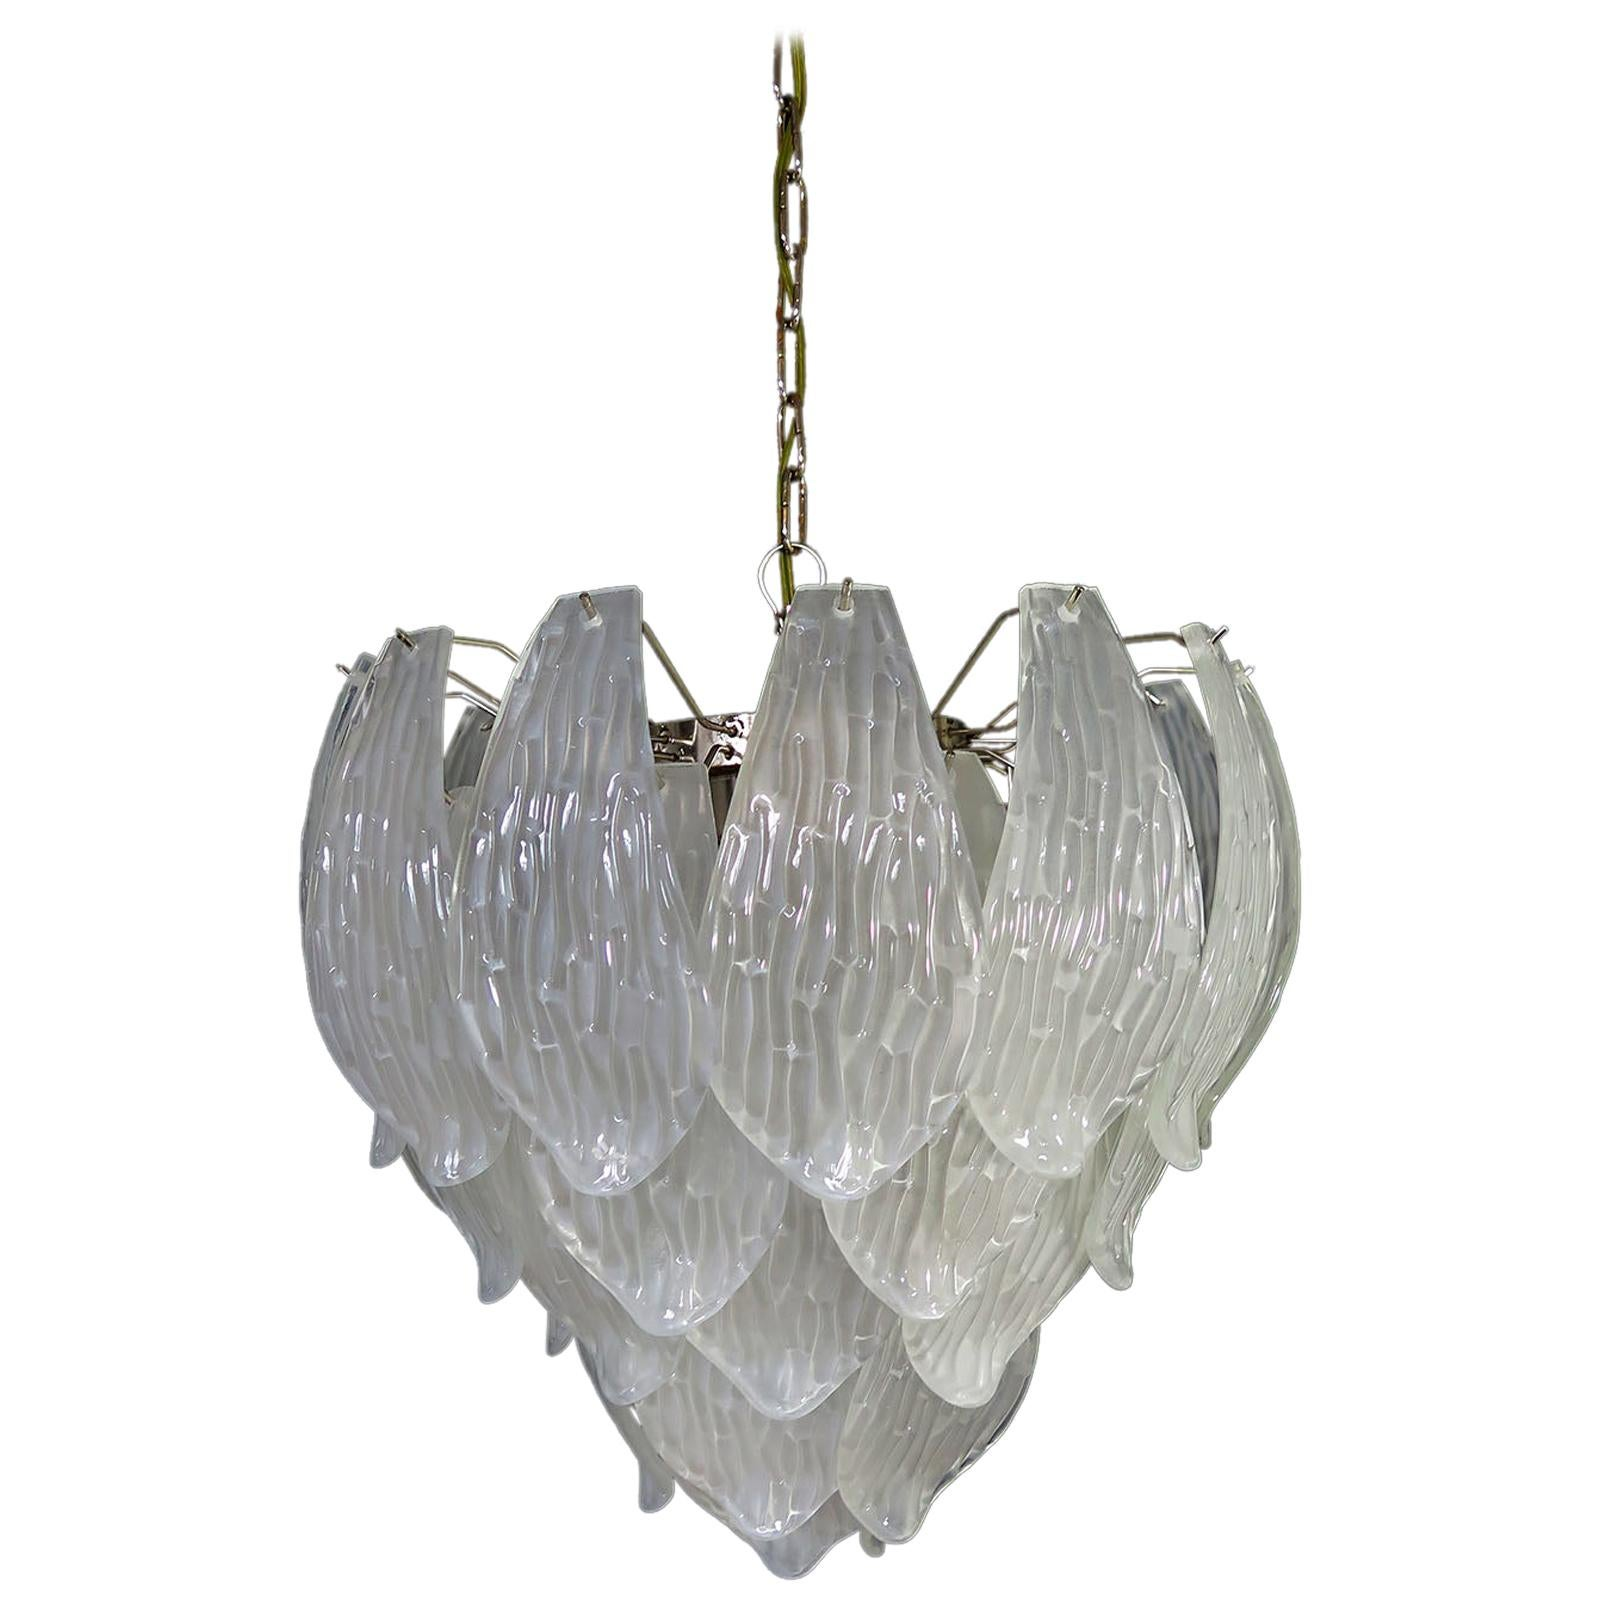 Italian Vintage Murano Chandelier, Frosted Carved Glass Leaves